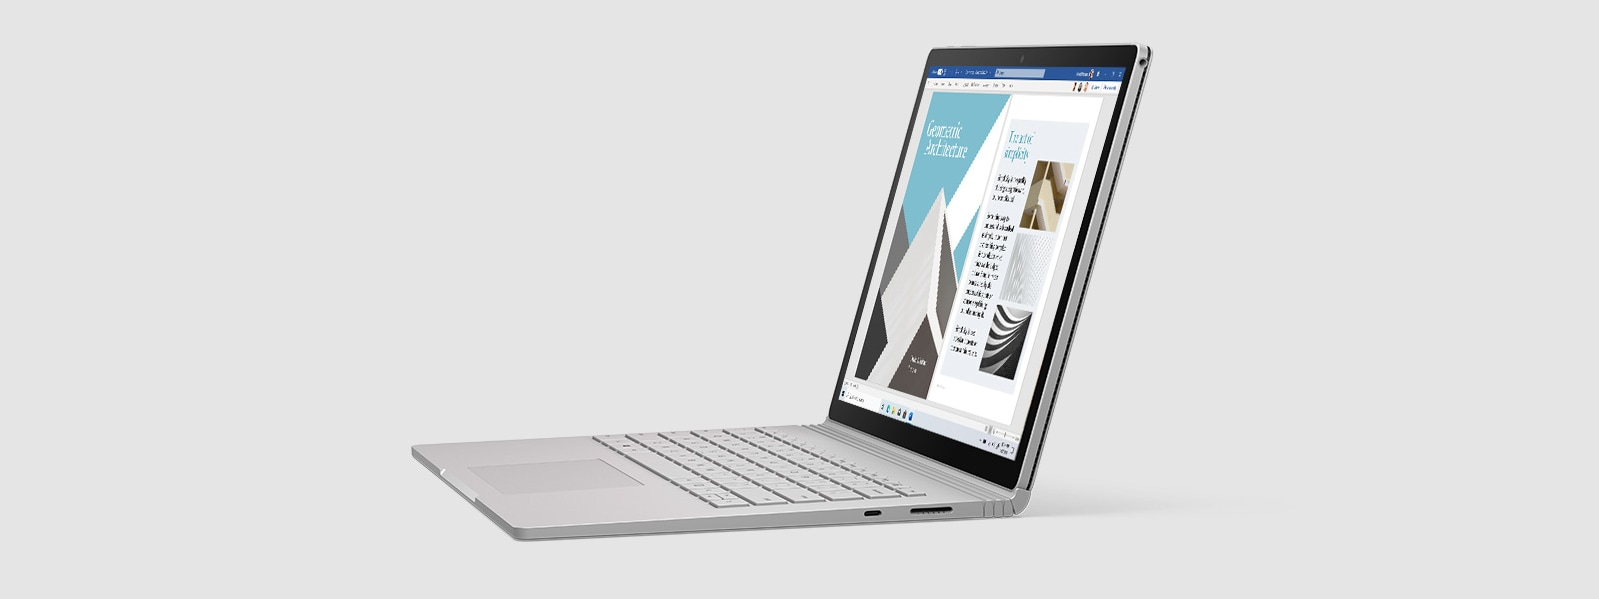 Surface Book 3 as a laptop in a side profile with Word